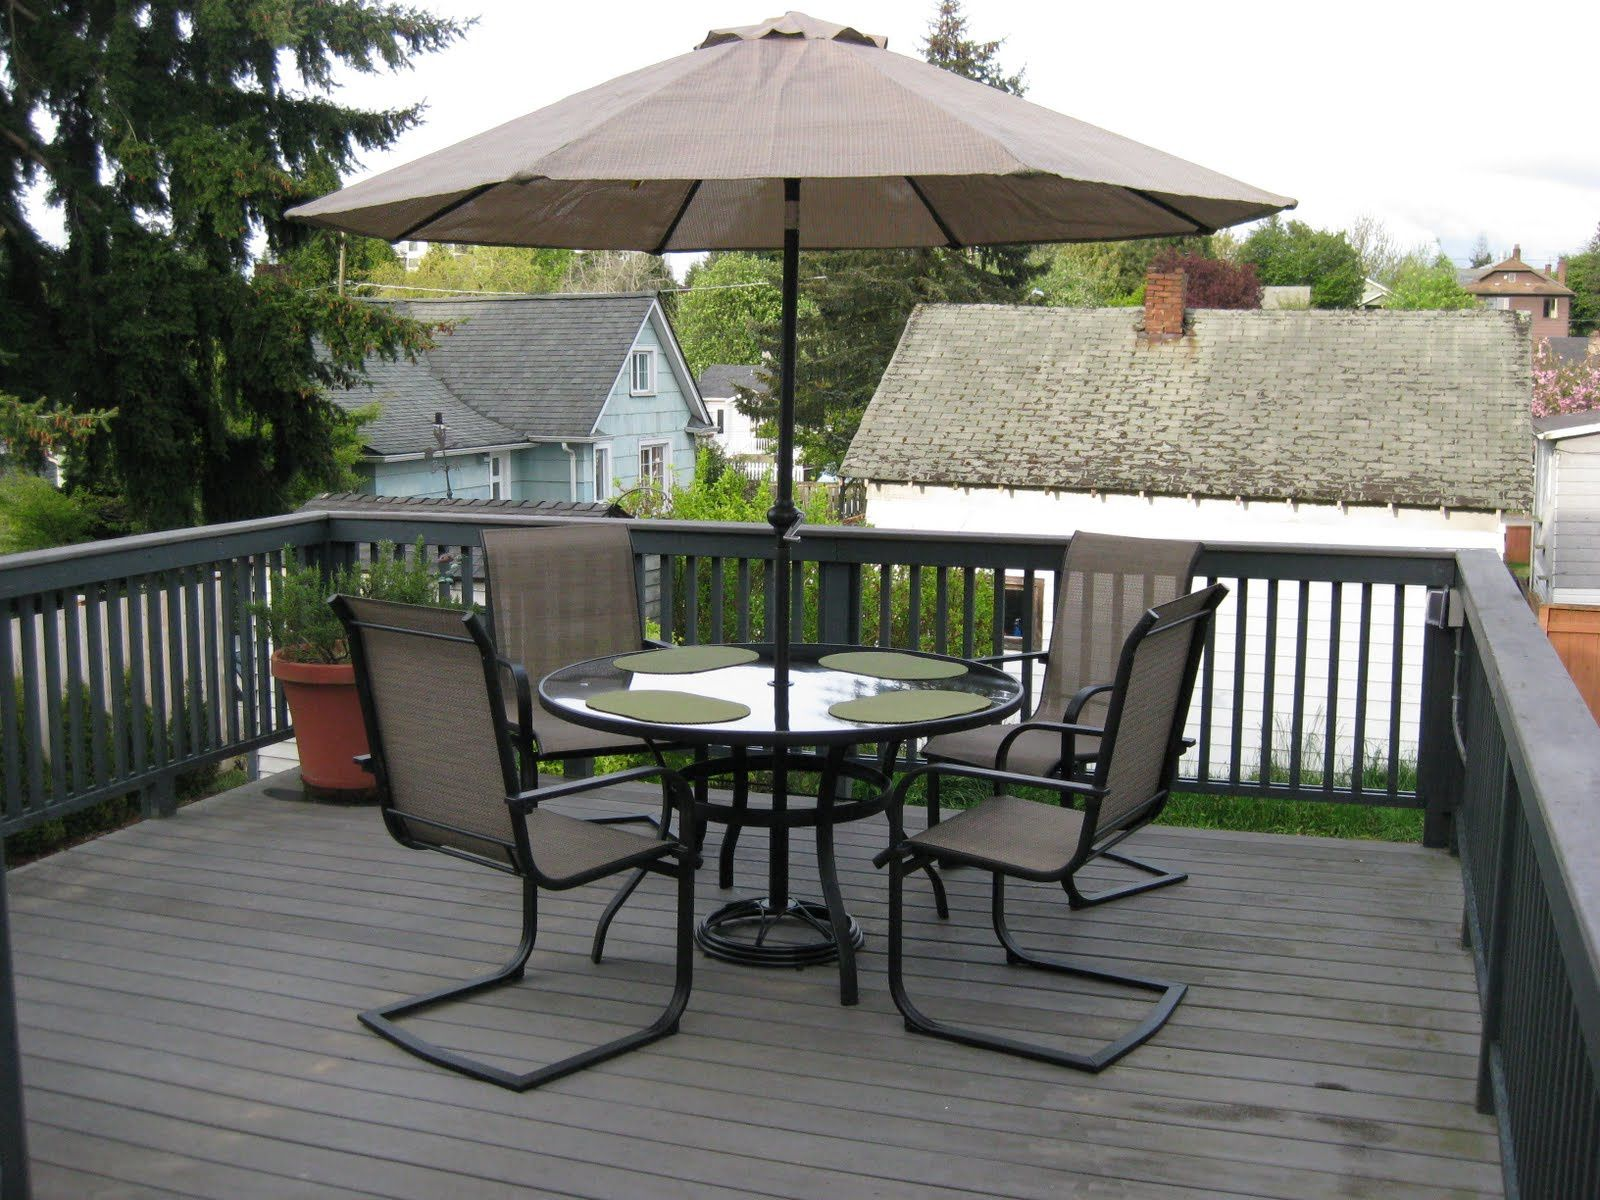 pin by annora on home interior patios bedroom furniture furniture rh pinterest co uk fred meyer bali patio furniture fred meyer wicker patio furniture